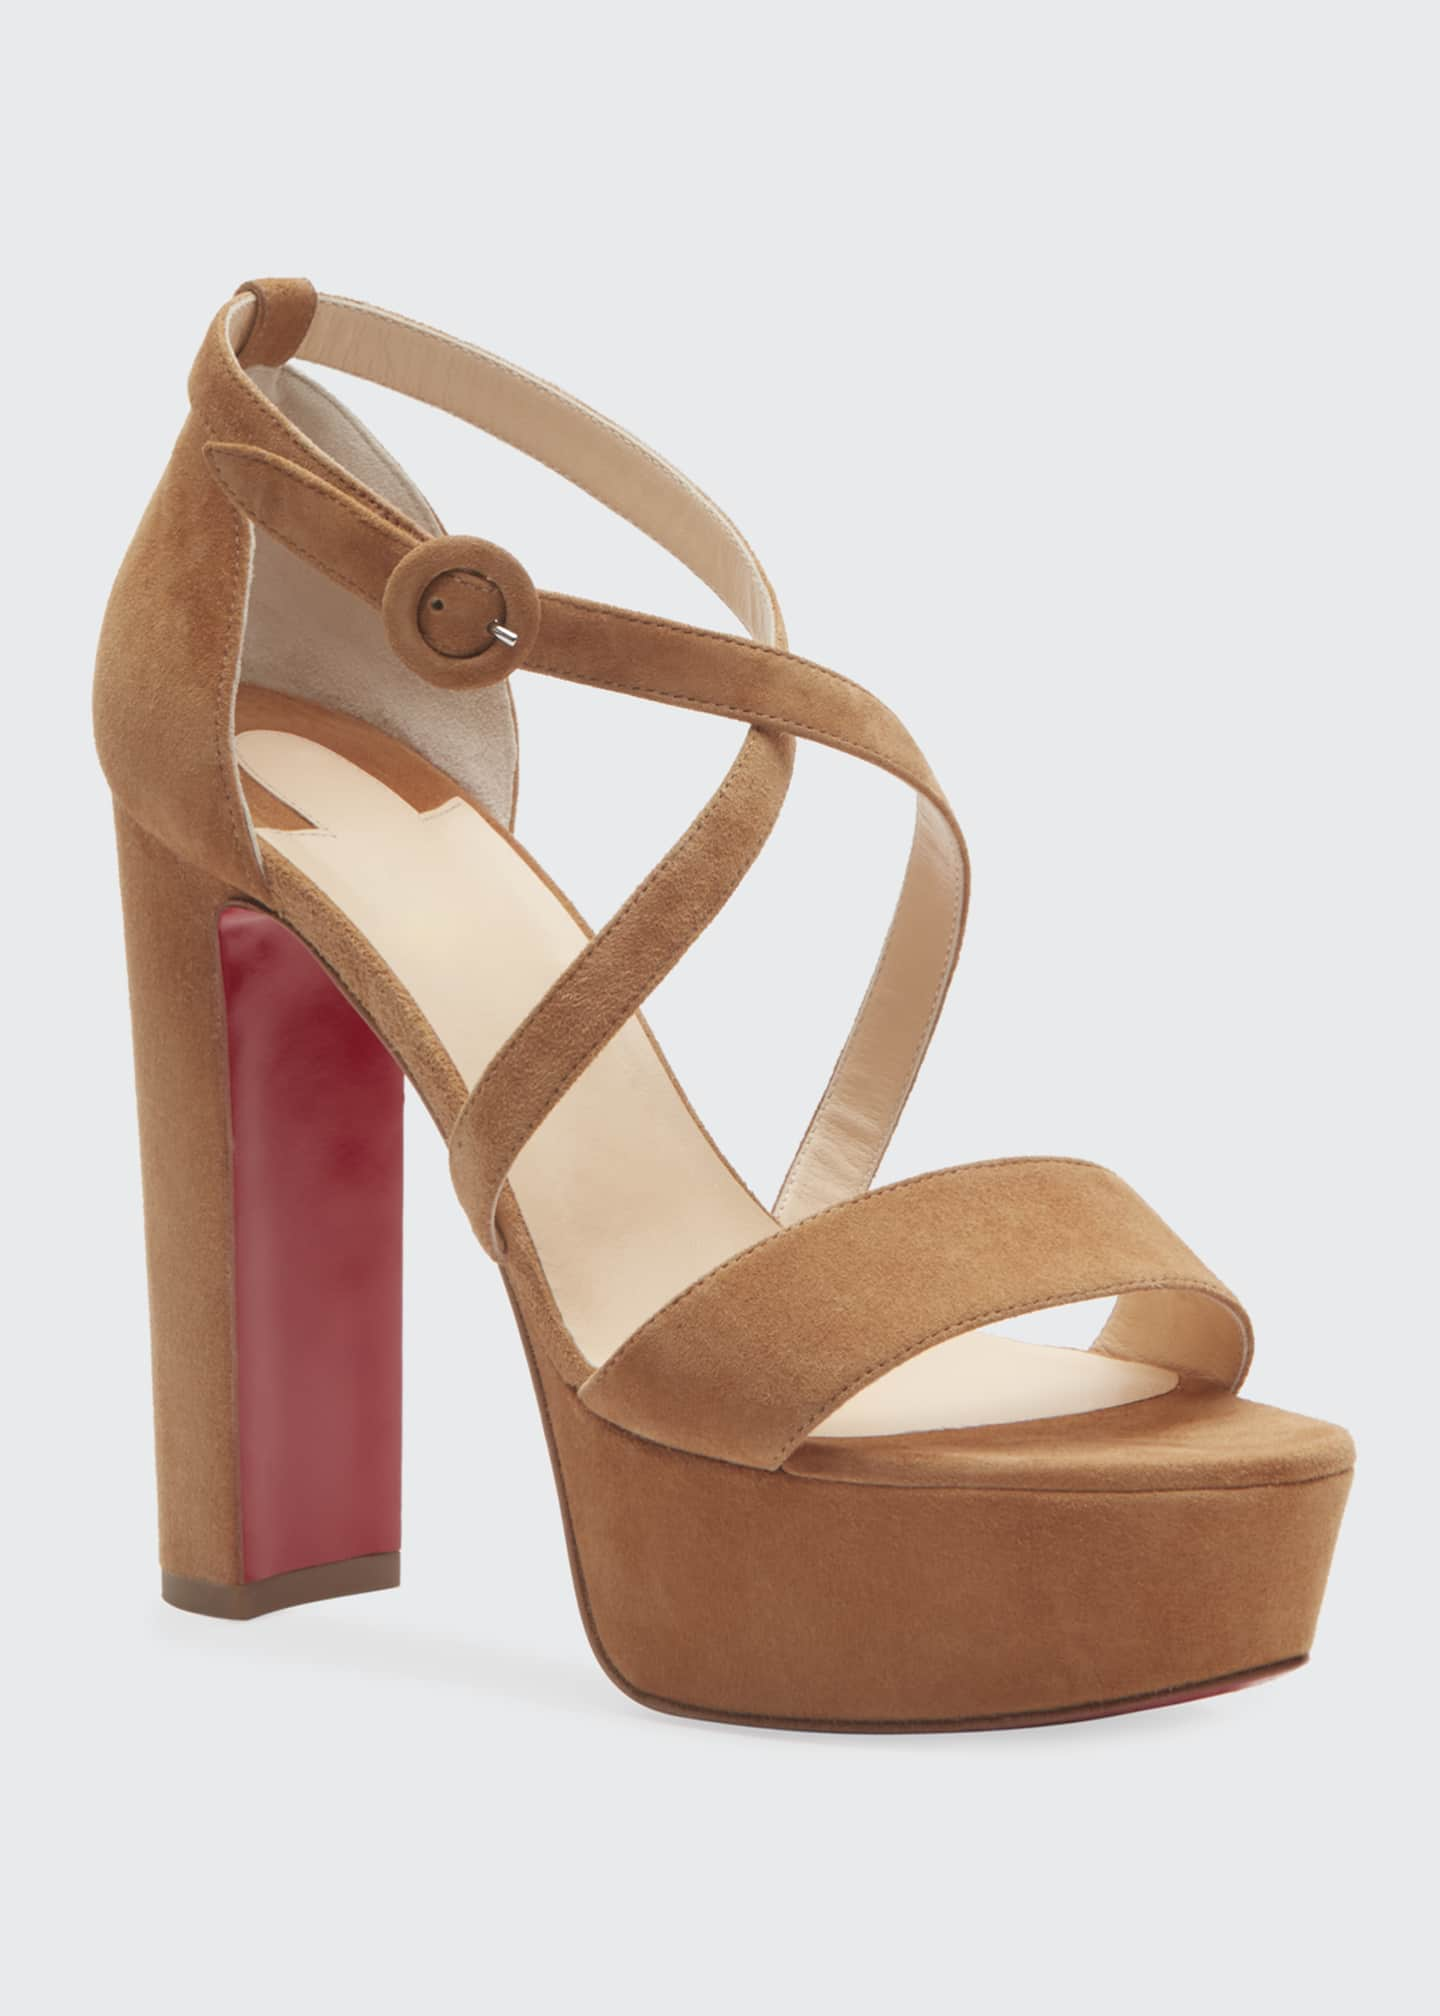 Image 2 of 2: Loubi Suede Red Sole Platform Sandals